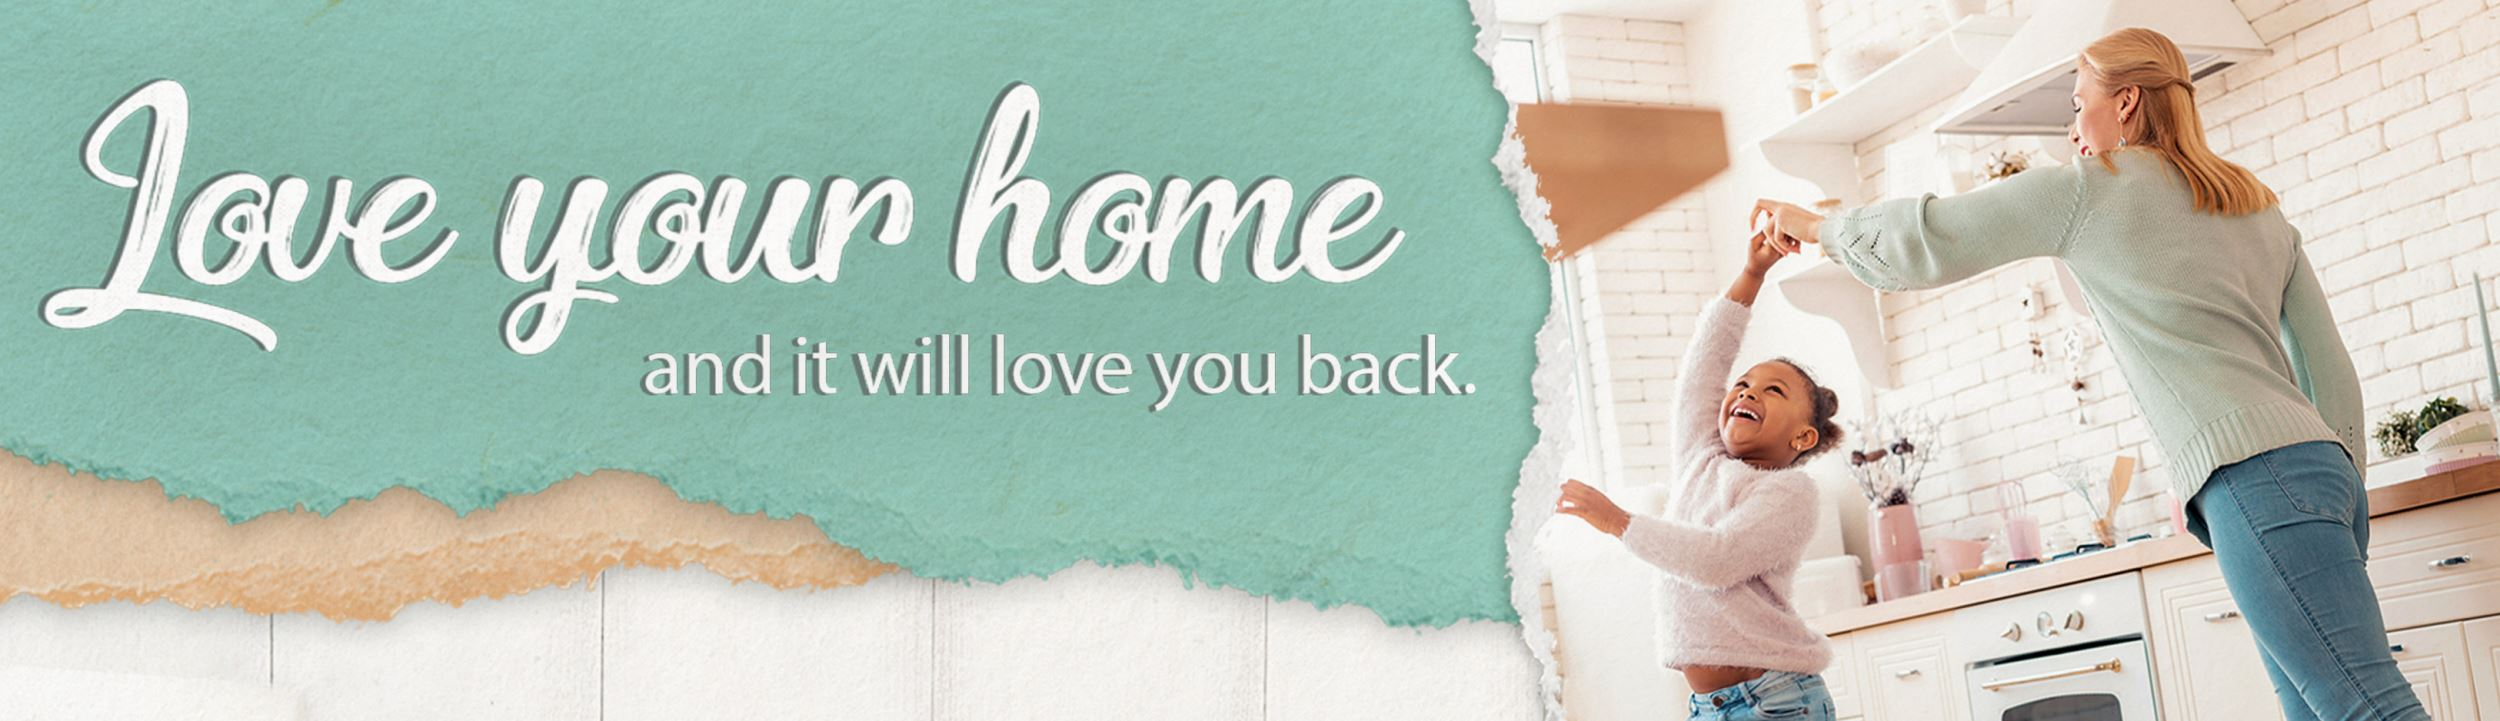 Love your home and it will love you back..